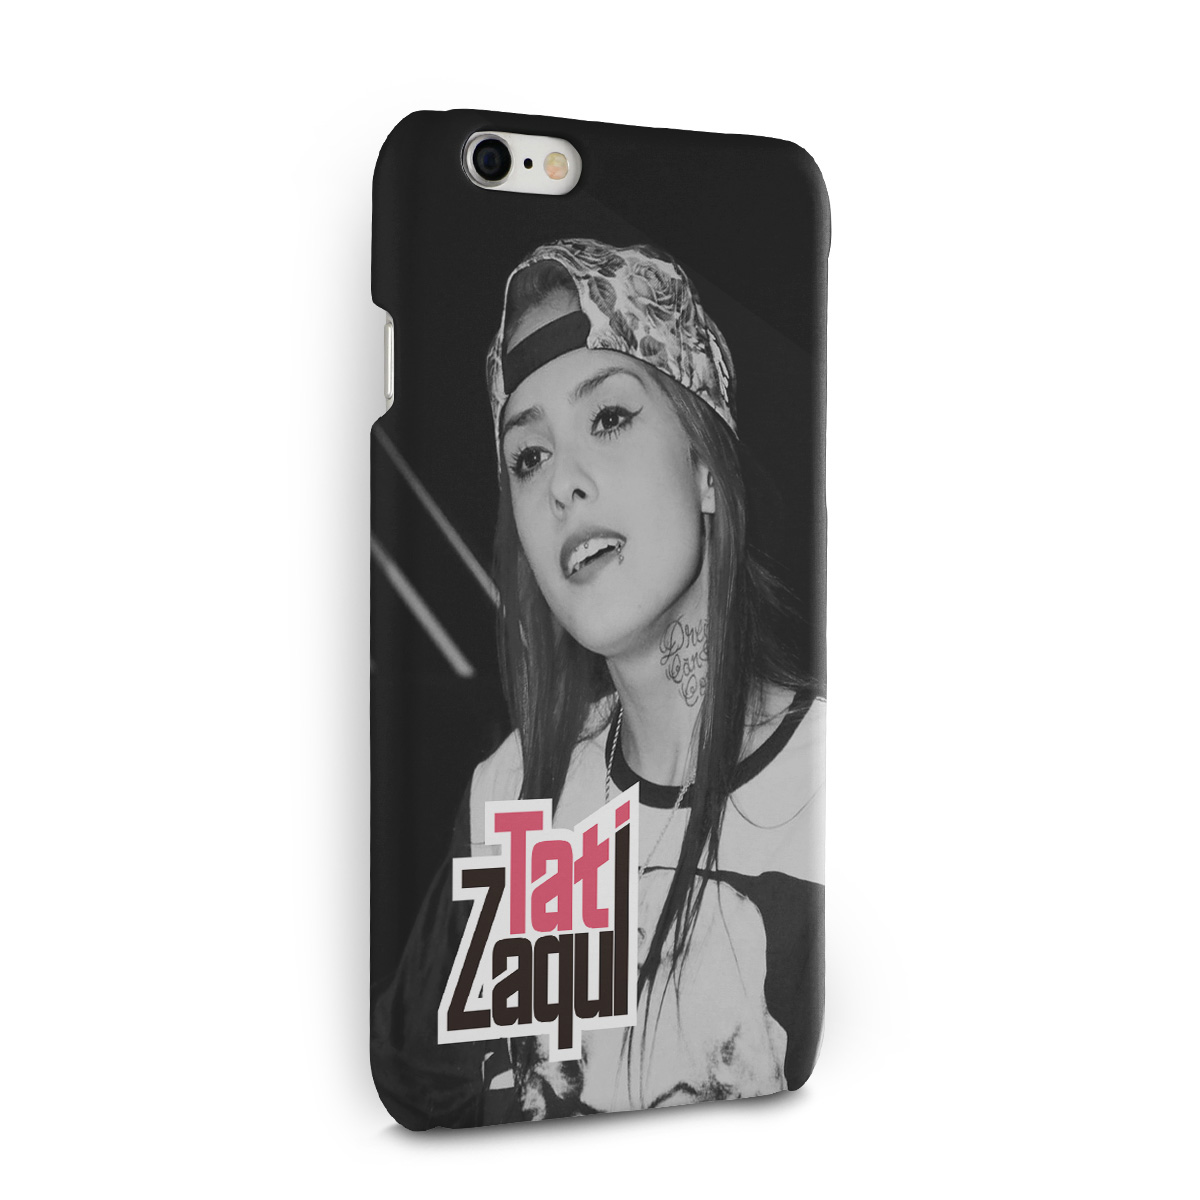 Capa para iPhone 6/6S MC Tati Zaqui Foto